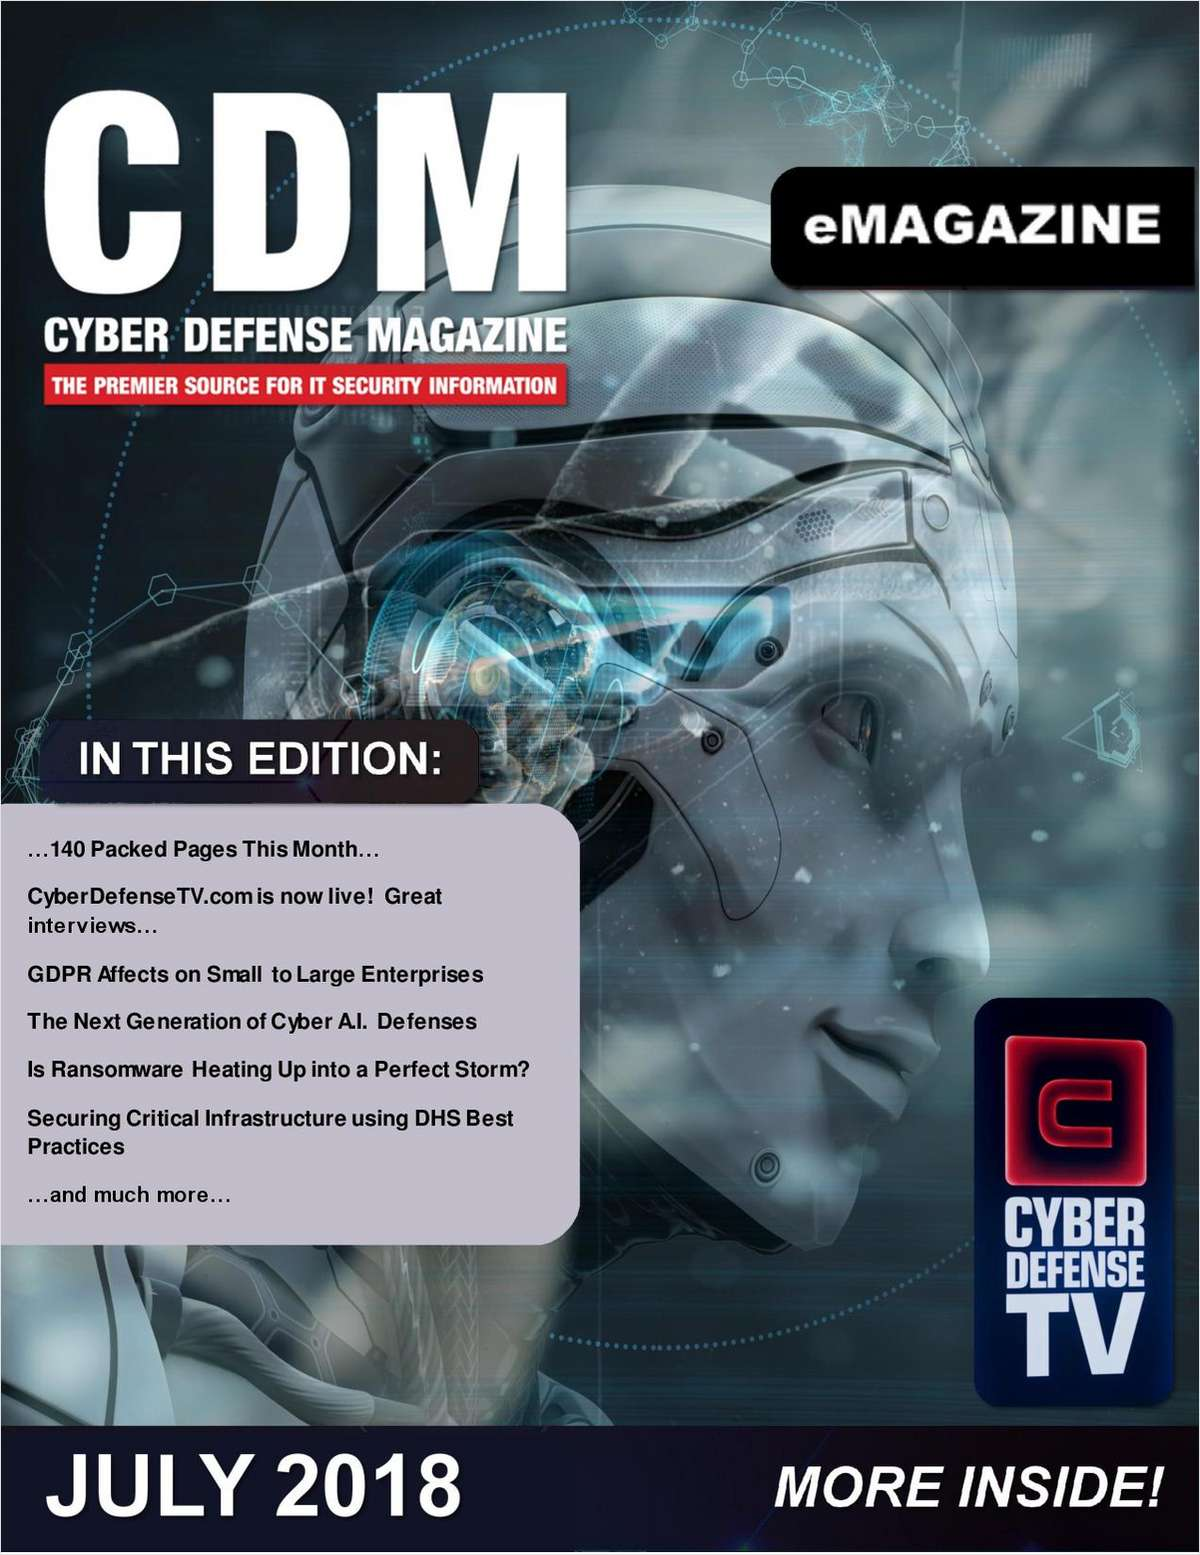 Cyber Defense eMagazine - GDPR Affects on Small to Large Enterprises - July 2018 Edition